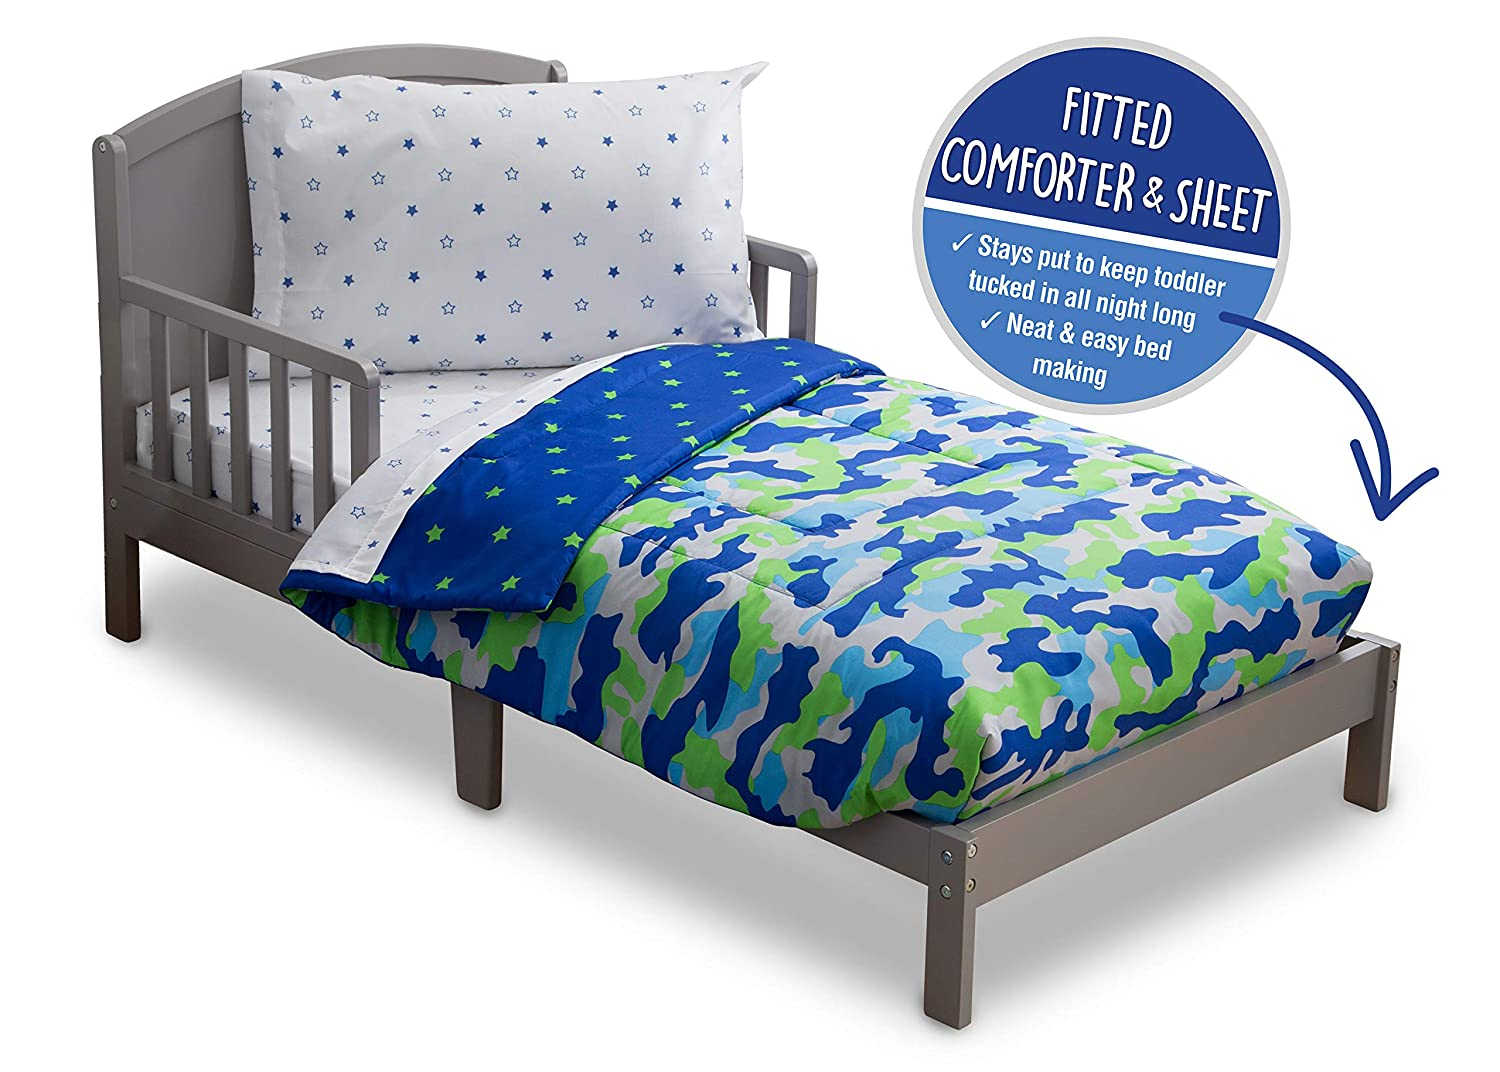 Toddler Bedding Set | Boys 4 Piece Collection | Fitted Sheet, Flat Top Sheet w/ Elastic bottom, Fitted Comforter w/ Elastic bottom, Pillowcase | Delta Children | Boys Camo Stars | Blue Green